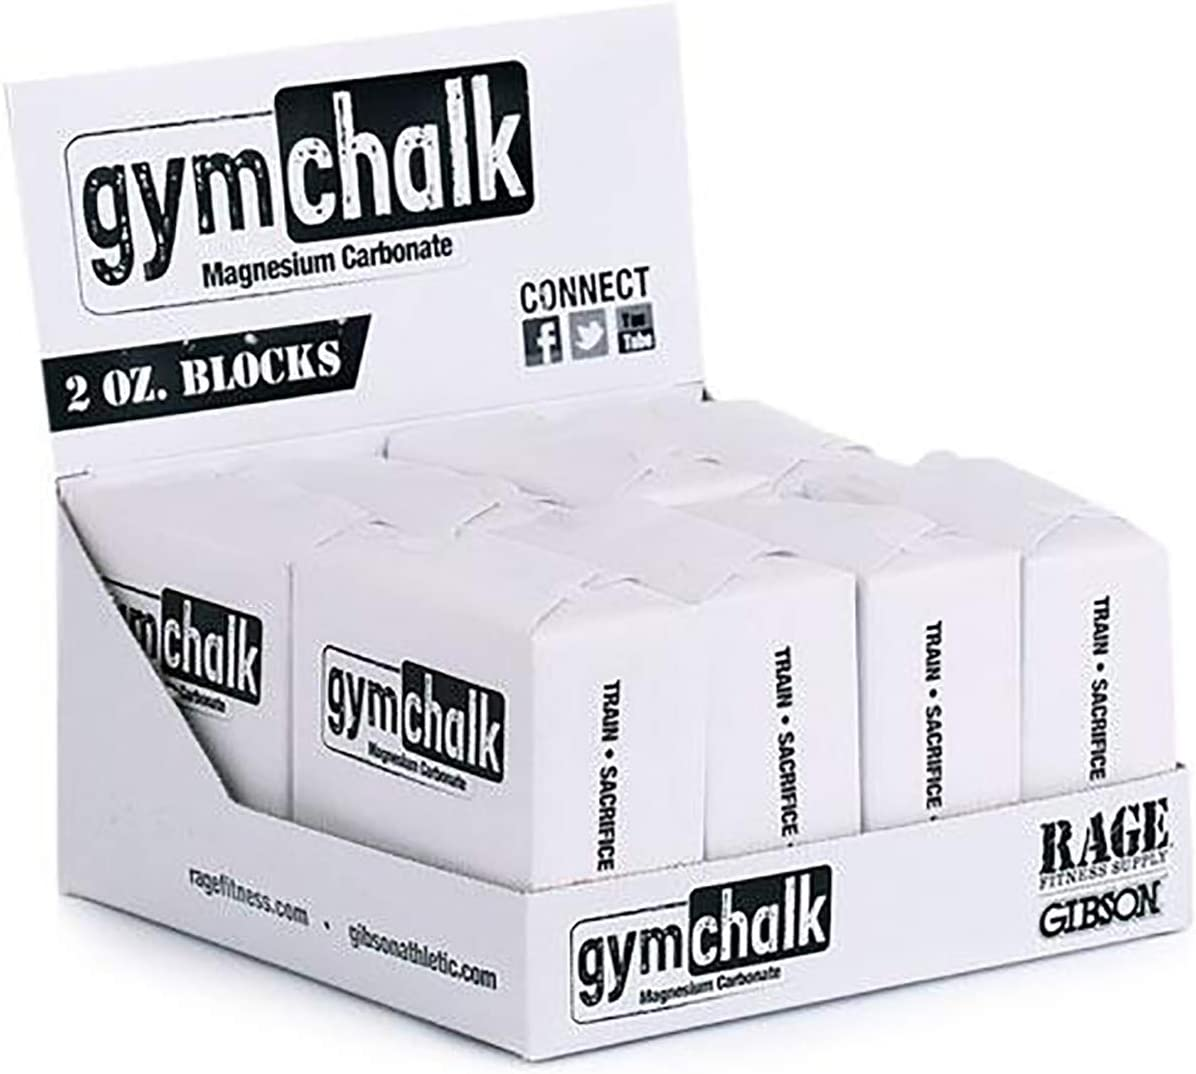 Gibson Athletic Premium Block Gym Chalk, 1Lb, Consists of (8) 2 oz Blocks, Magnesium Carbonate, Gymnastics, Weightlifting, Rock Climbing White : Sports & Outdoors